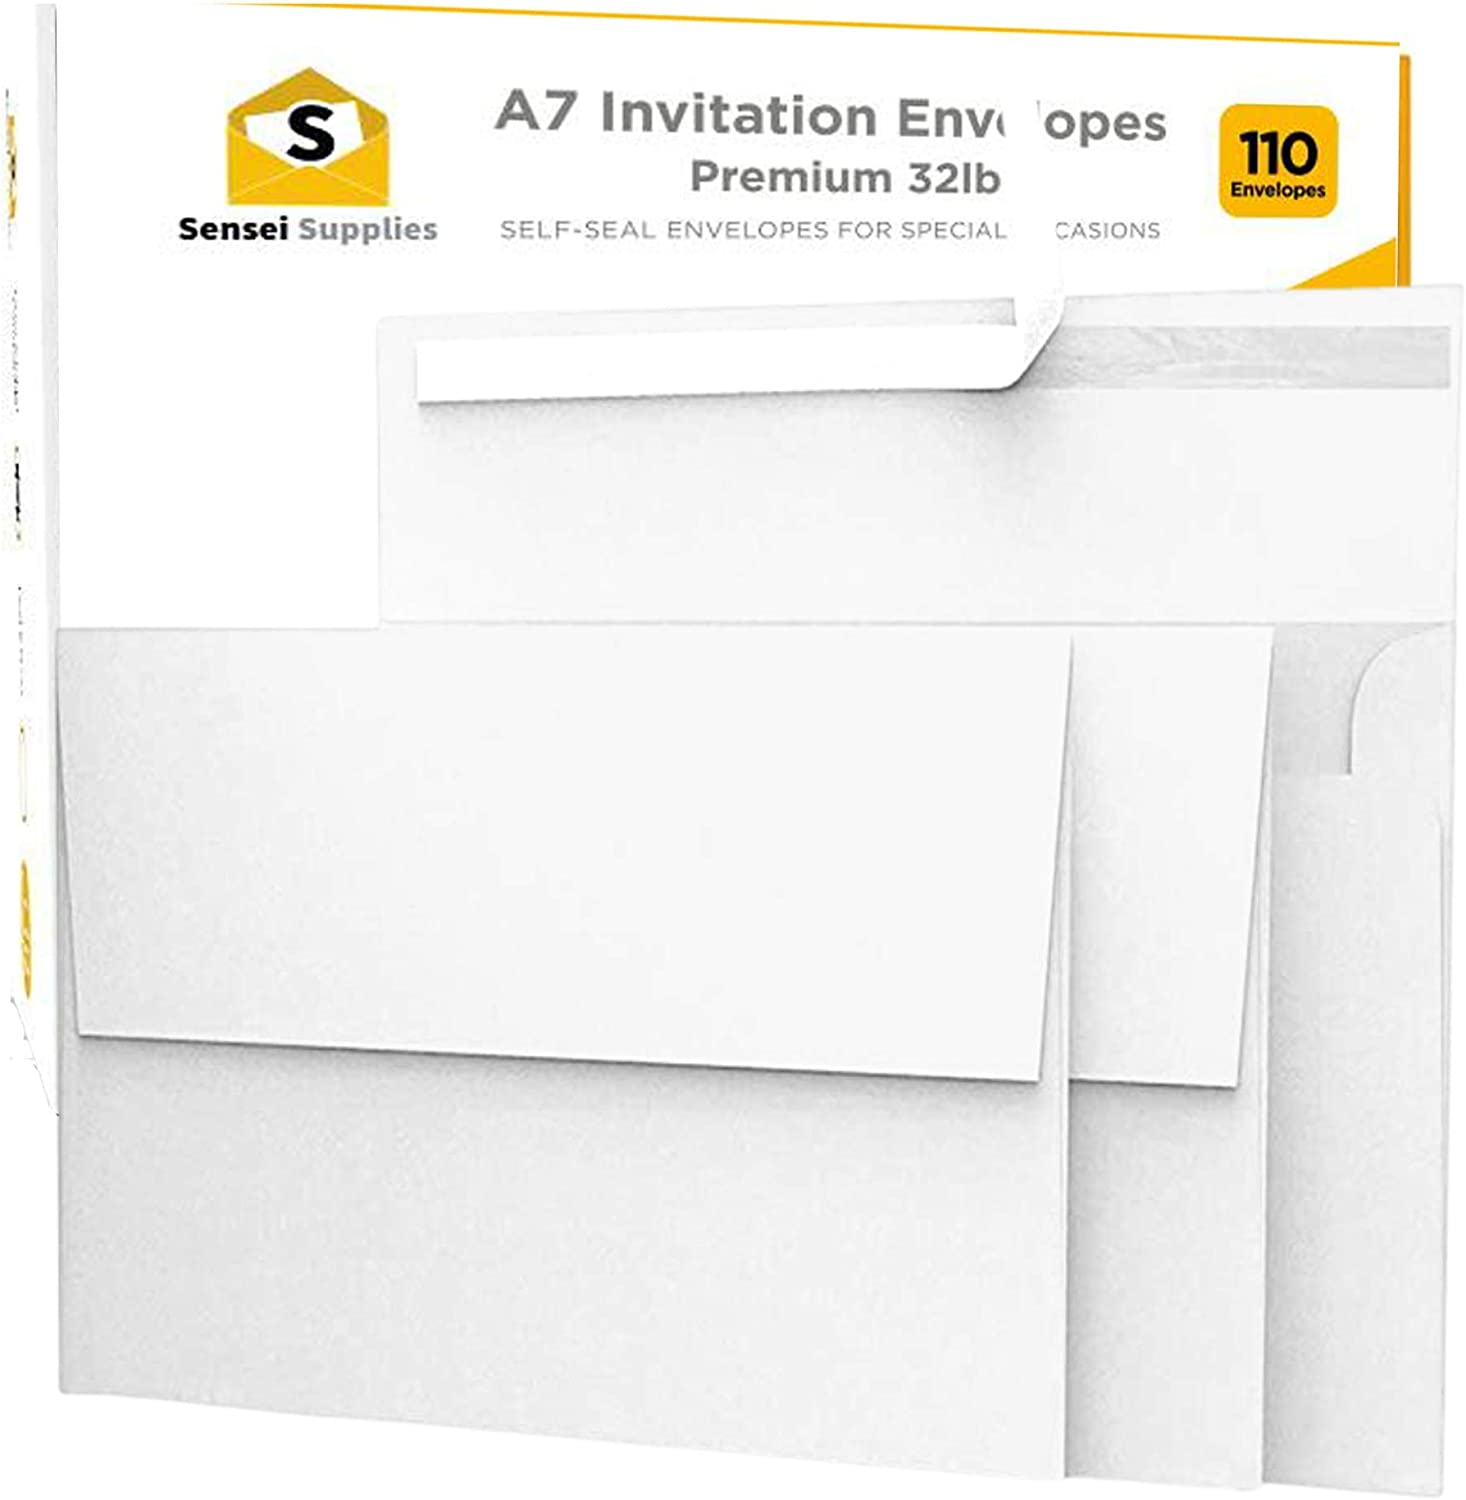 110 5x7 White Invitation Envelopes - for 5x7 Cards - A7 - (5 ¼ x 7 ¼ inches) - Perfect for Weddings, Graduation, Baby Shower - 120 GSM - Peel, Press & Self Seal - Square Flap